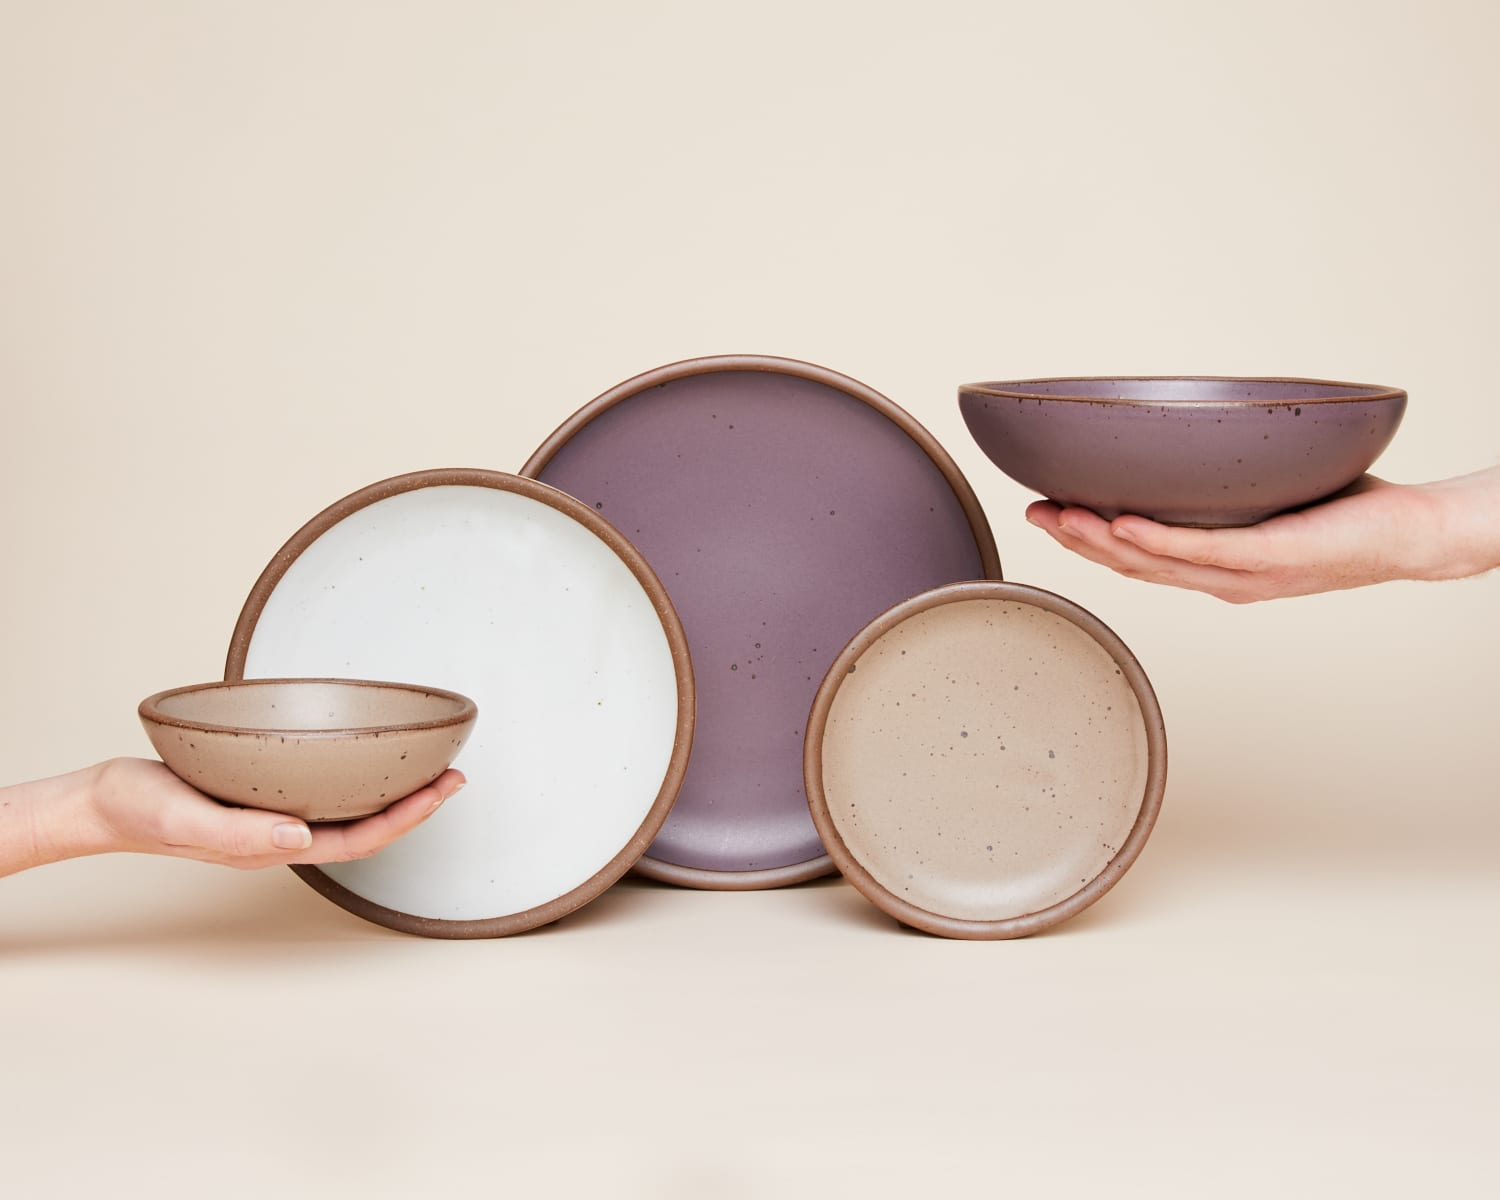 This Cult-Favorite Pottery Brand Just Launched a Dreamy New Glaze